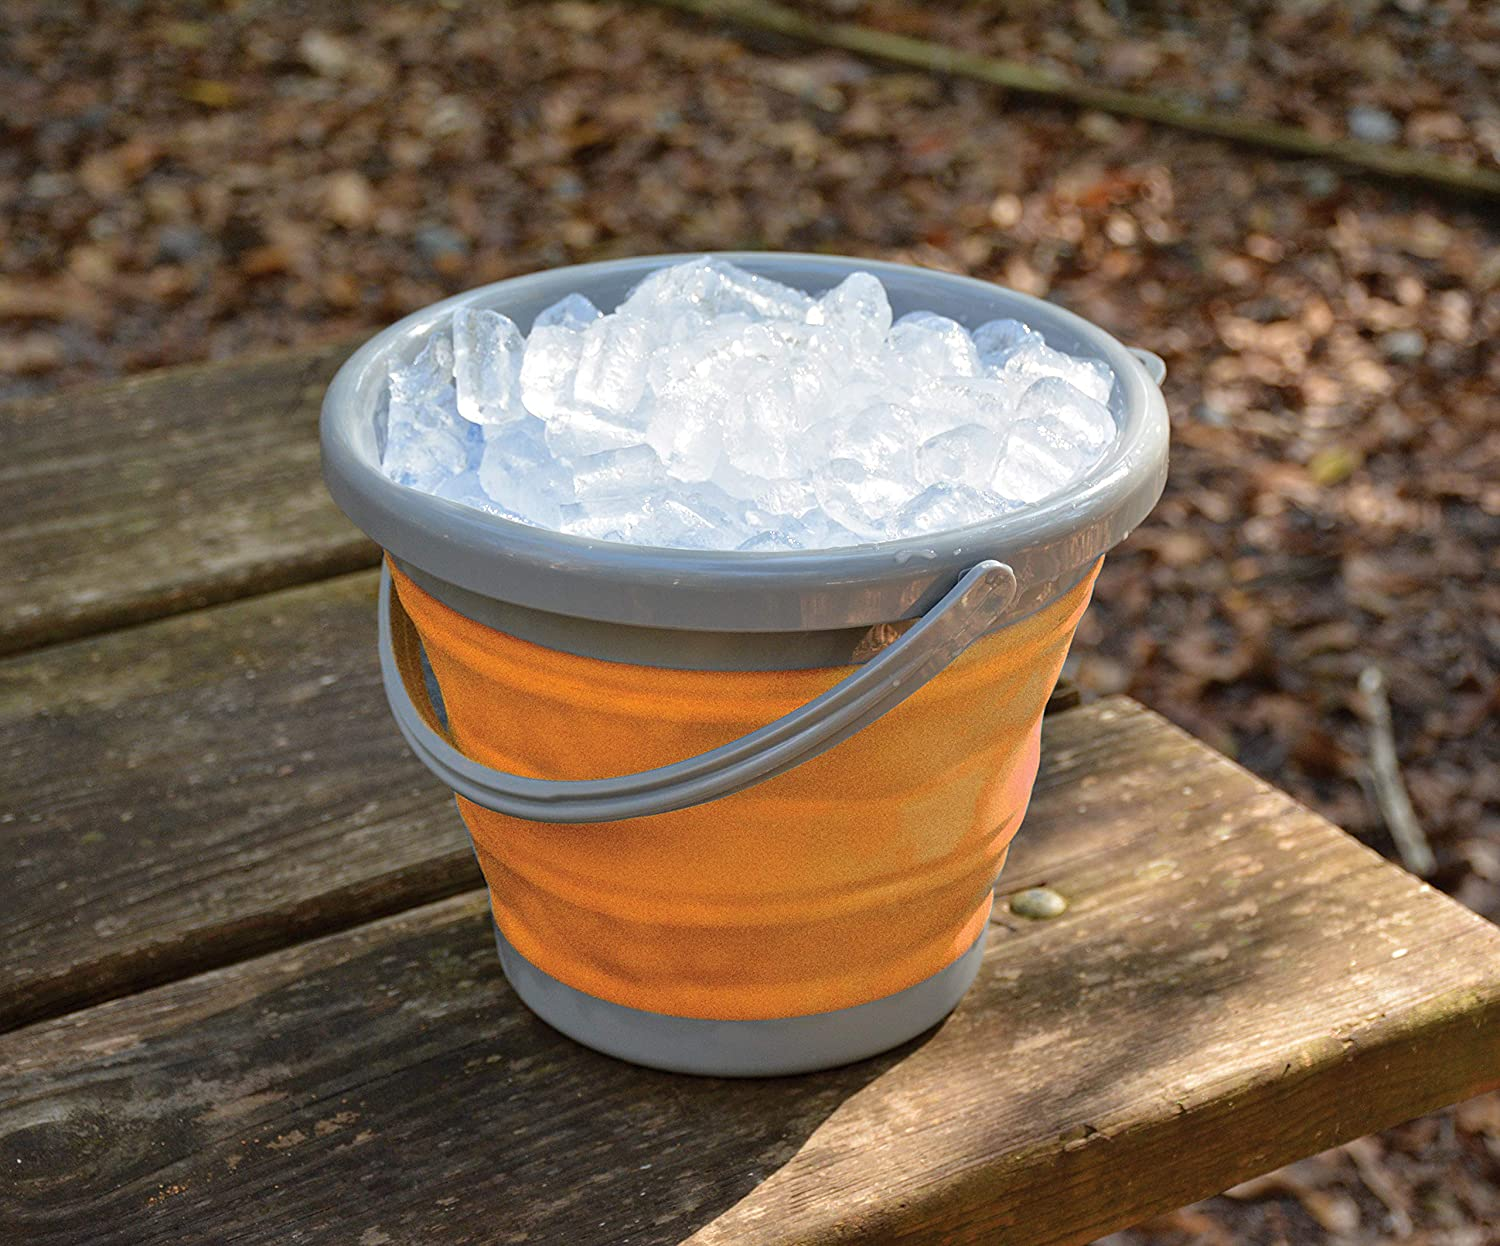 UST FlexWare Collapsible Bucket with Strong BPA Free Design and Sturdy Handle for Hiking Flexible Compact Backpacking Camping and Outdoor Survival